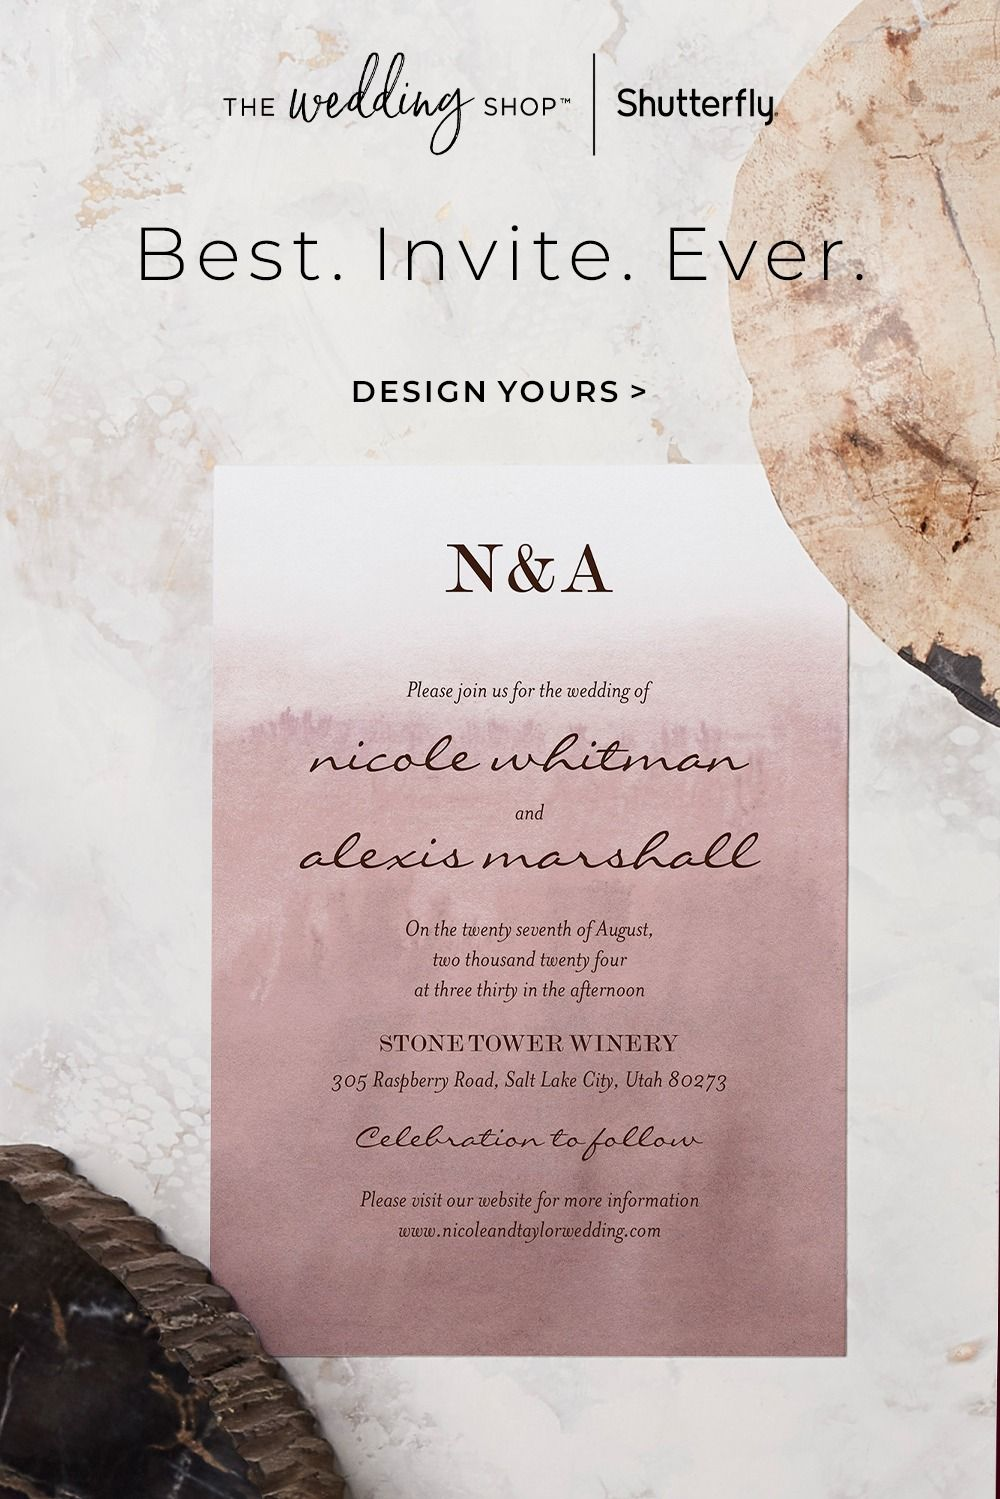 Personalize Your Perfect Wedding Invitation From The Wedding Shop By Shutterfly In 2021 Wedding Invitations Dream Wedding Venues Wedding